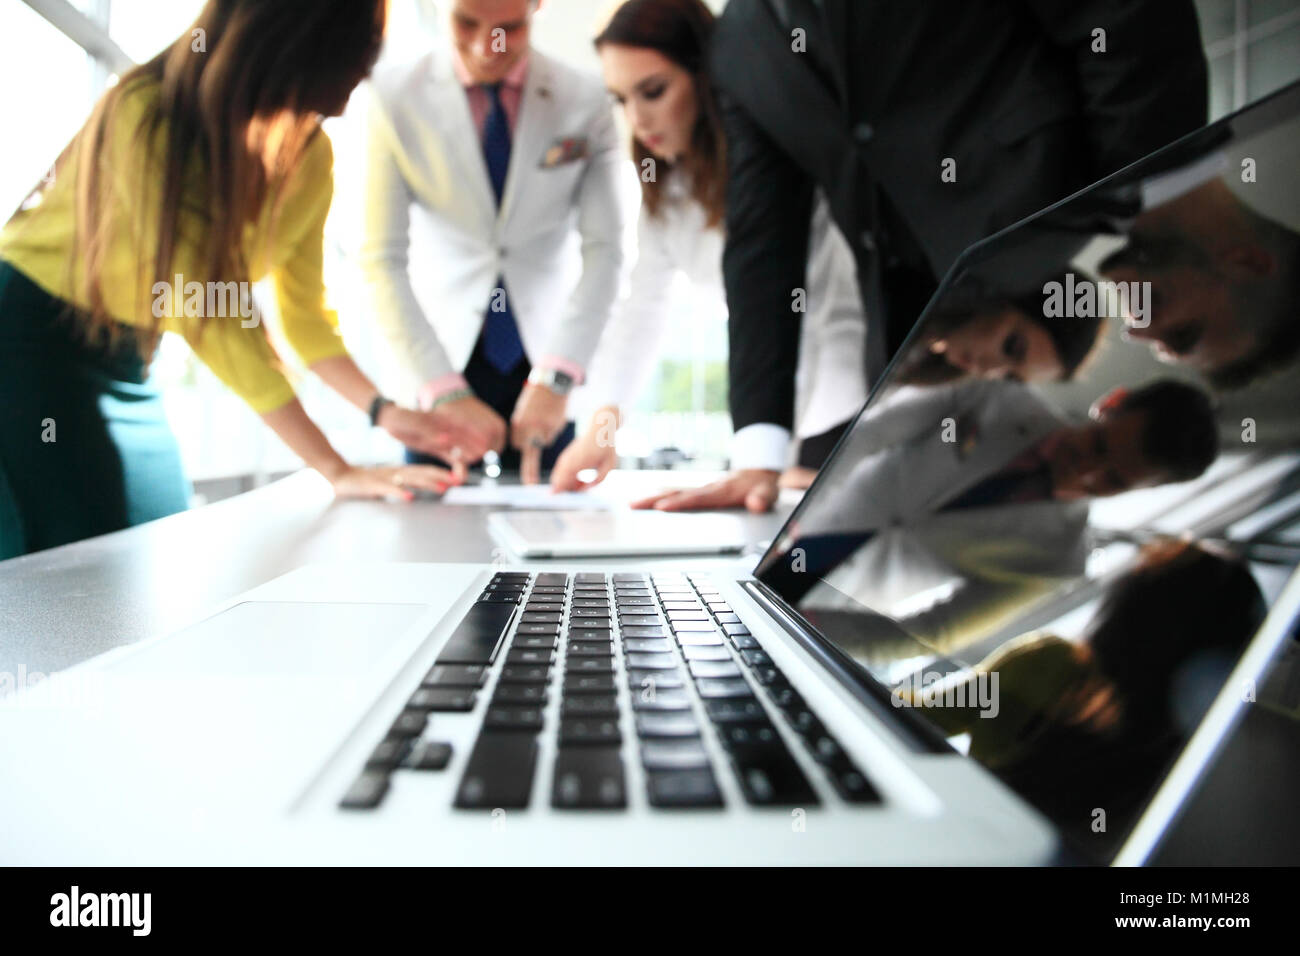 Business team discussing together business plans - Stock Image